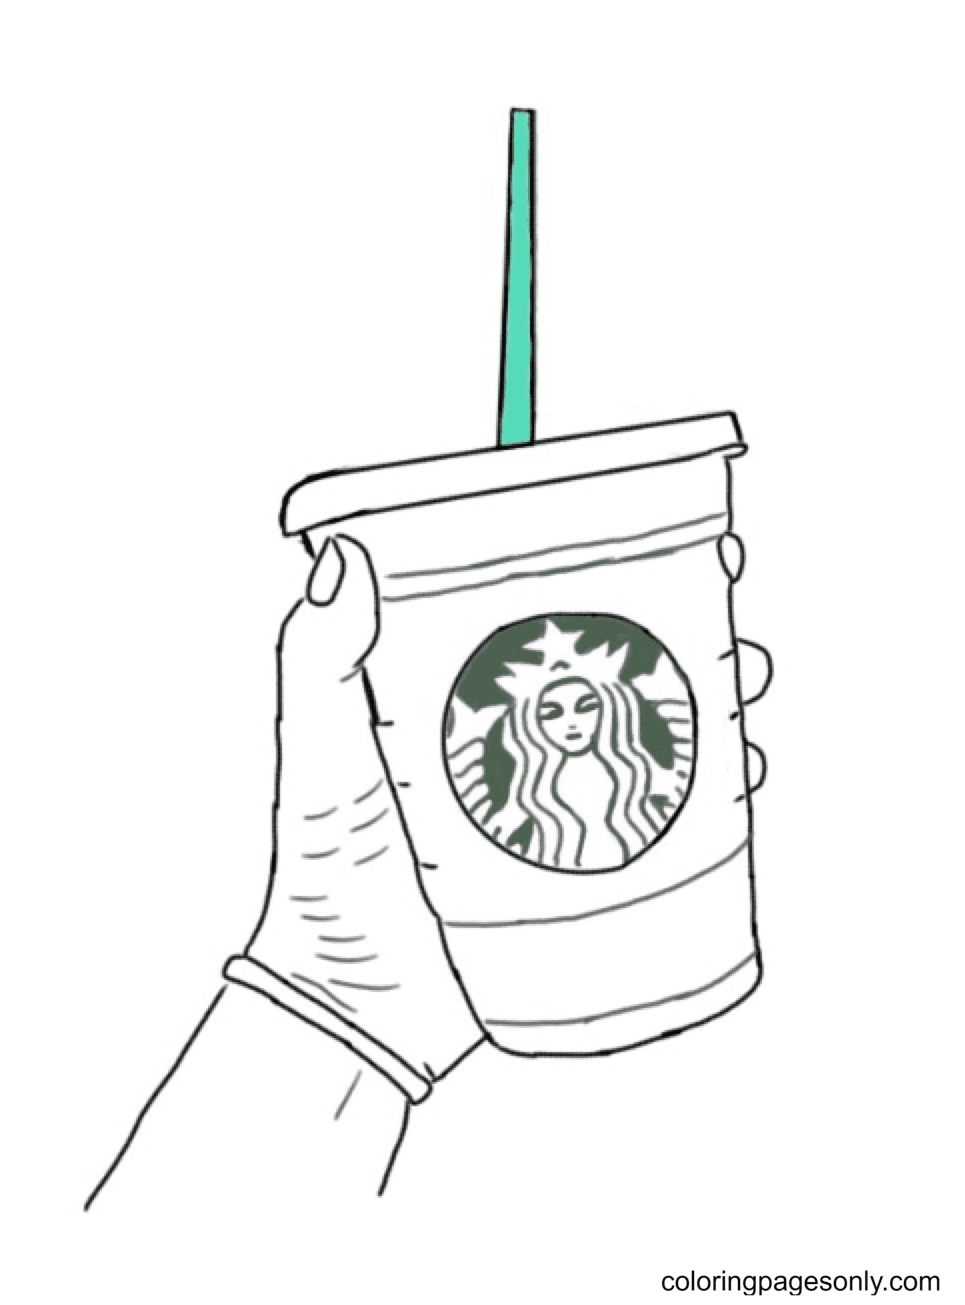 Starbucks Cup Coloring Page